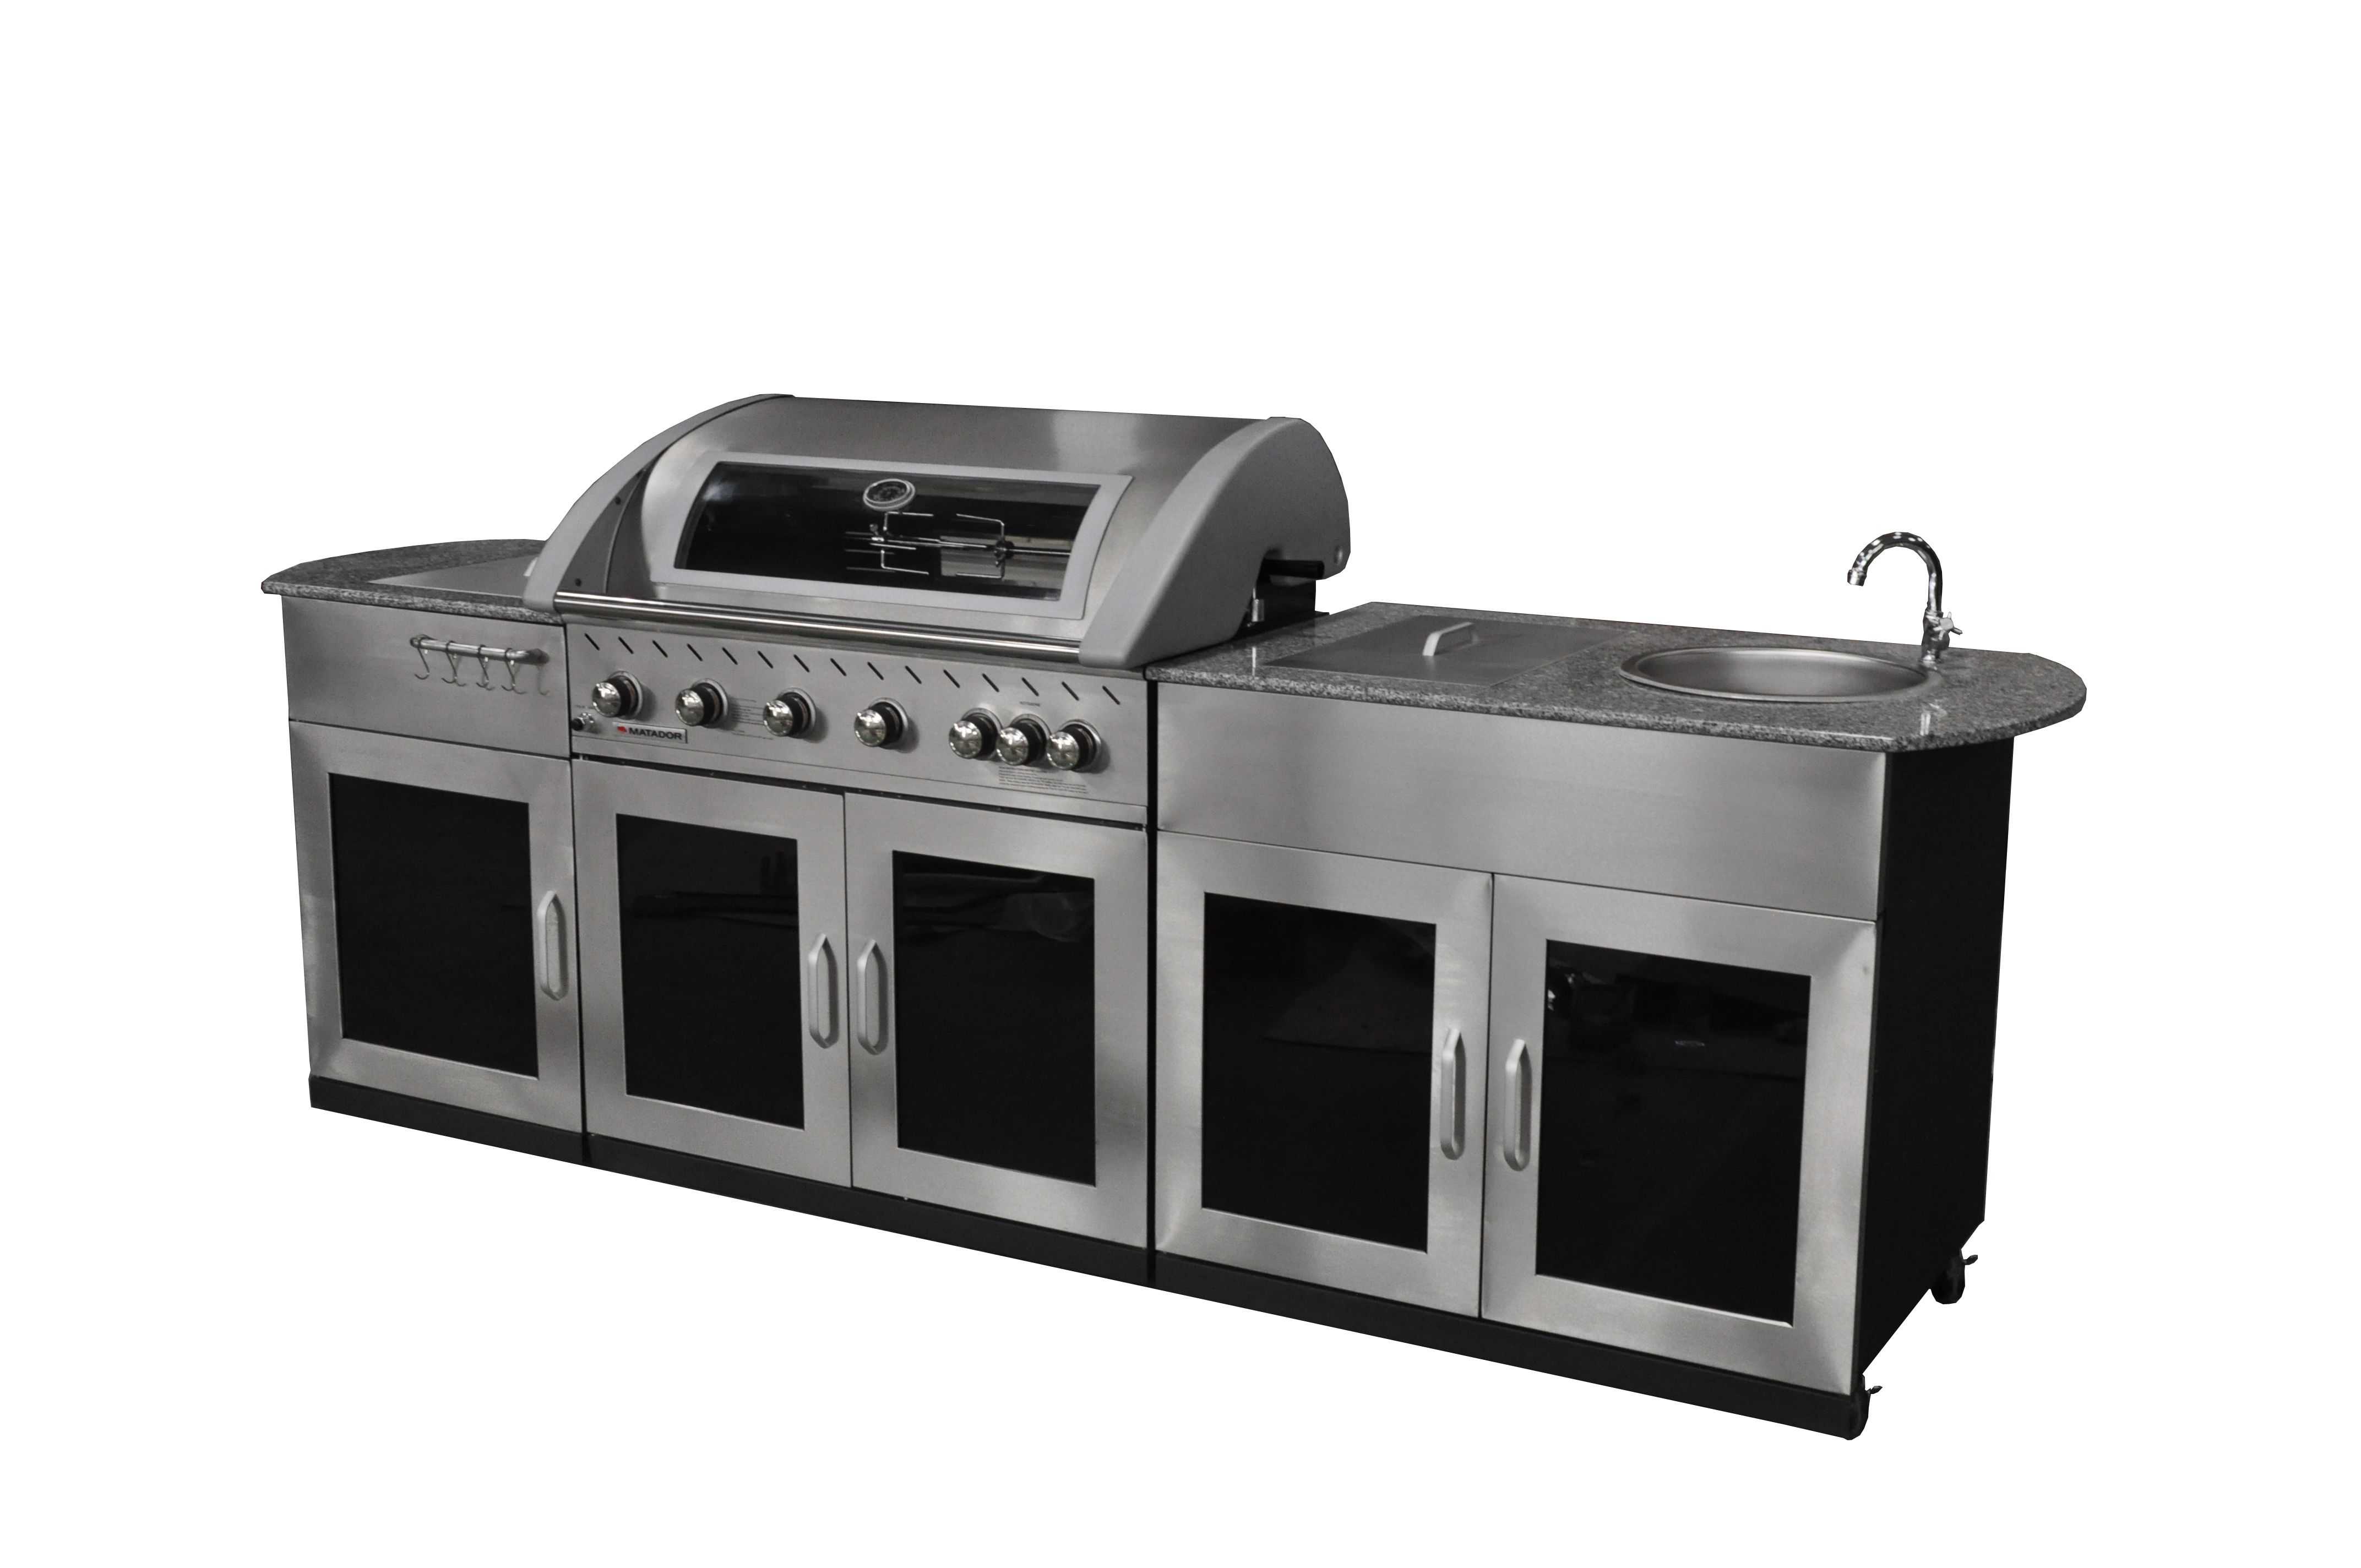 Matador Entertainer WELS 4 Star 7.5L/Minute 6 Burner